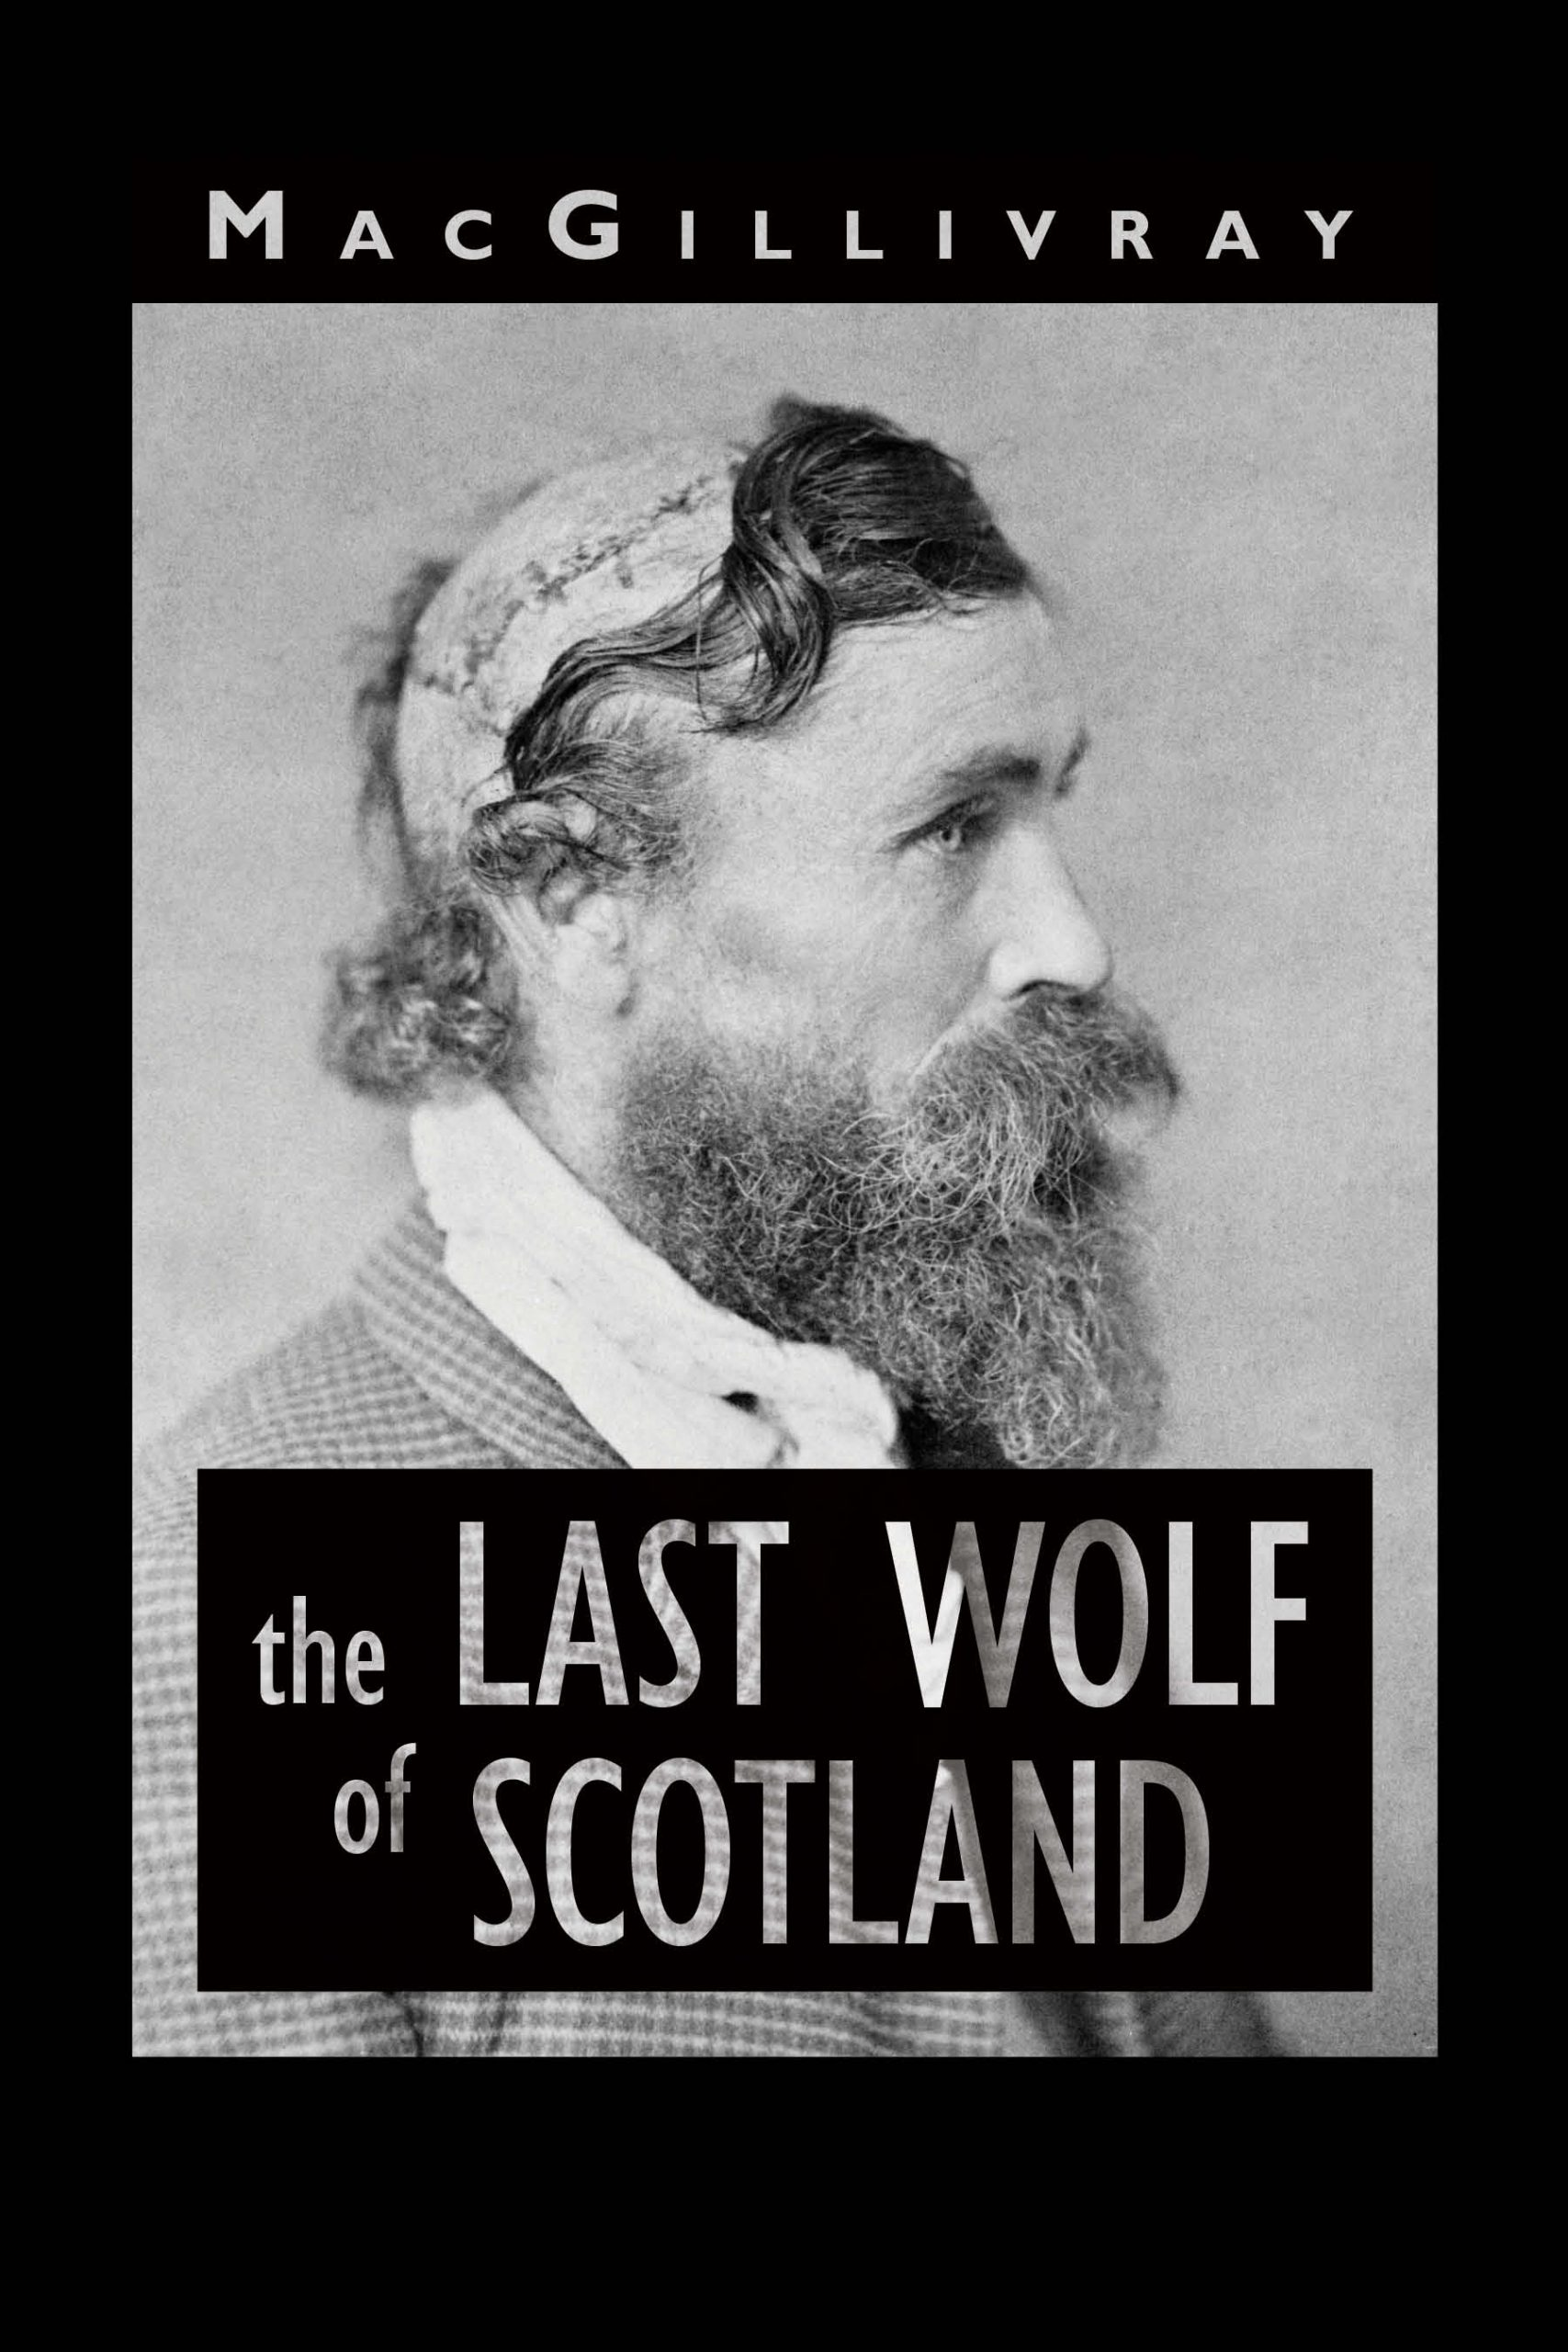 An old photograph of a middle aged man with a bald spot in his head revealing stiches and a large cut with script that reads The Last Wolf of Scotland by MacGillivray.